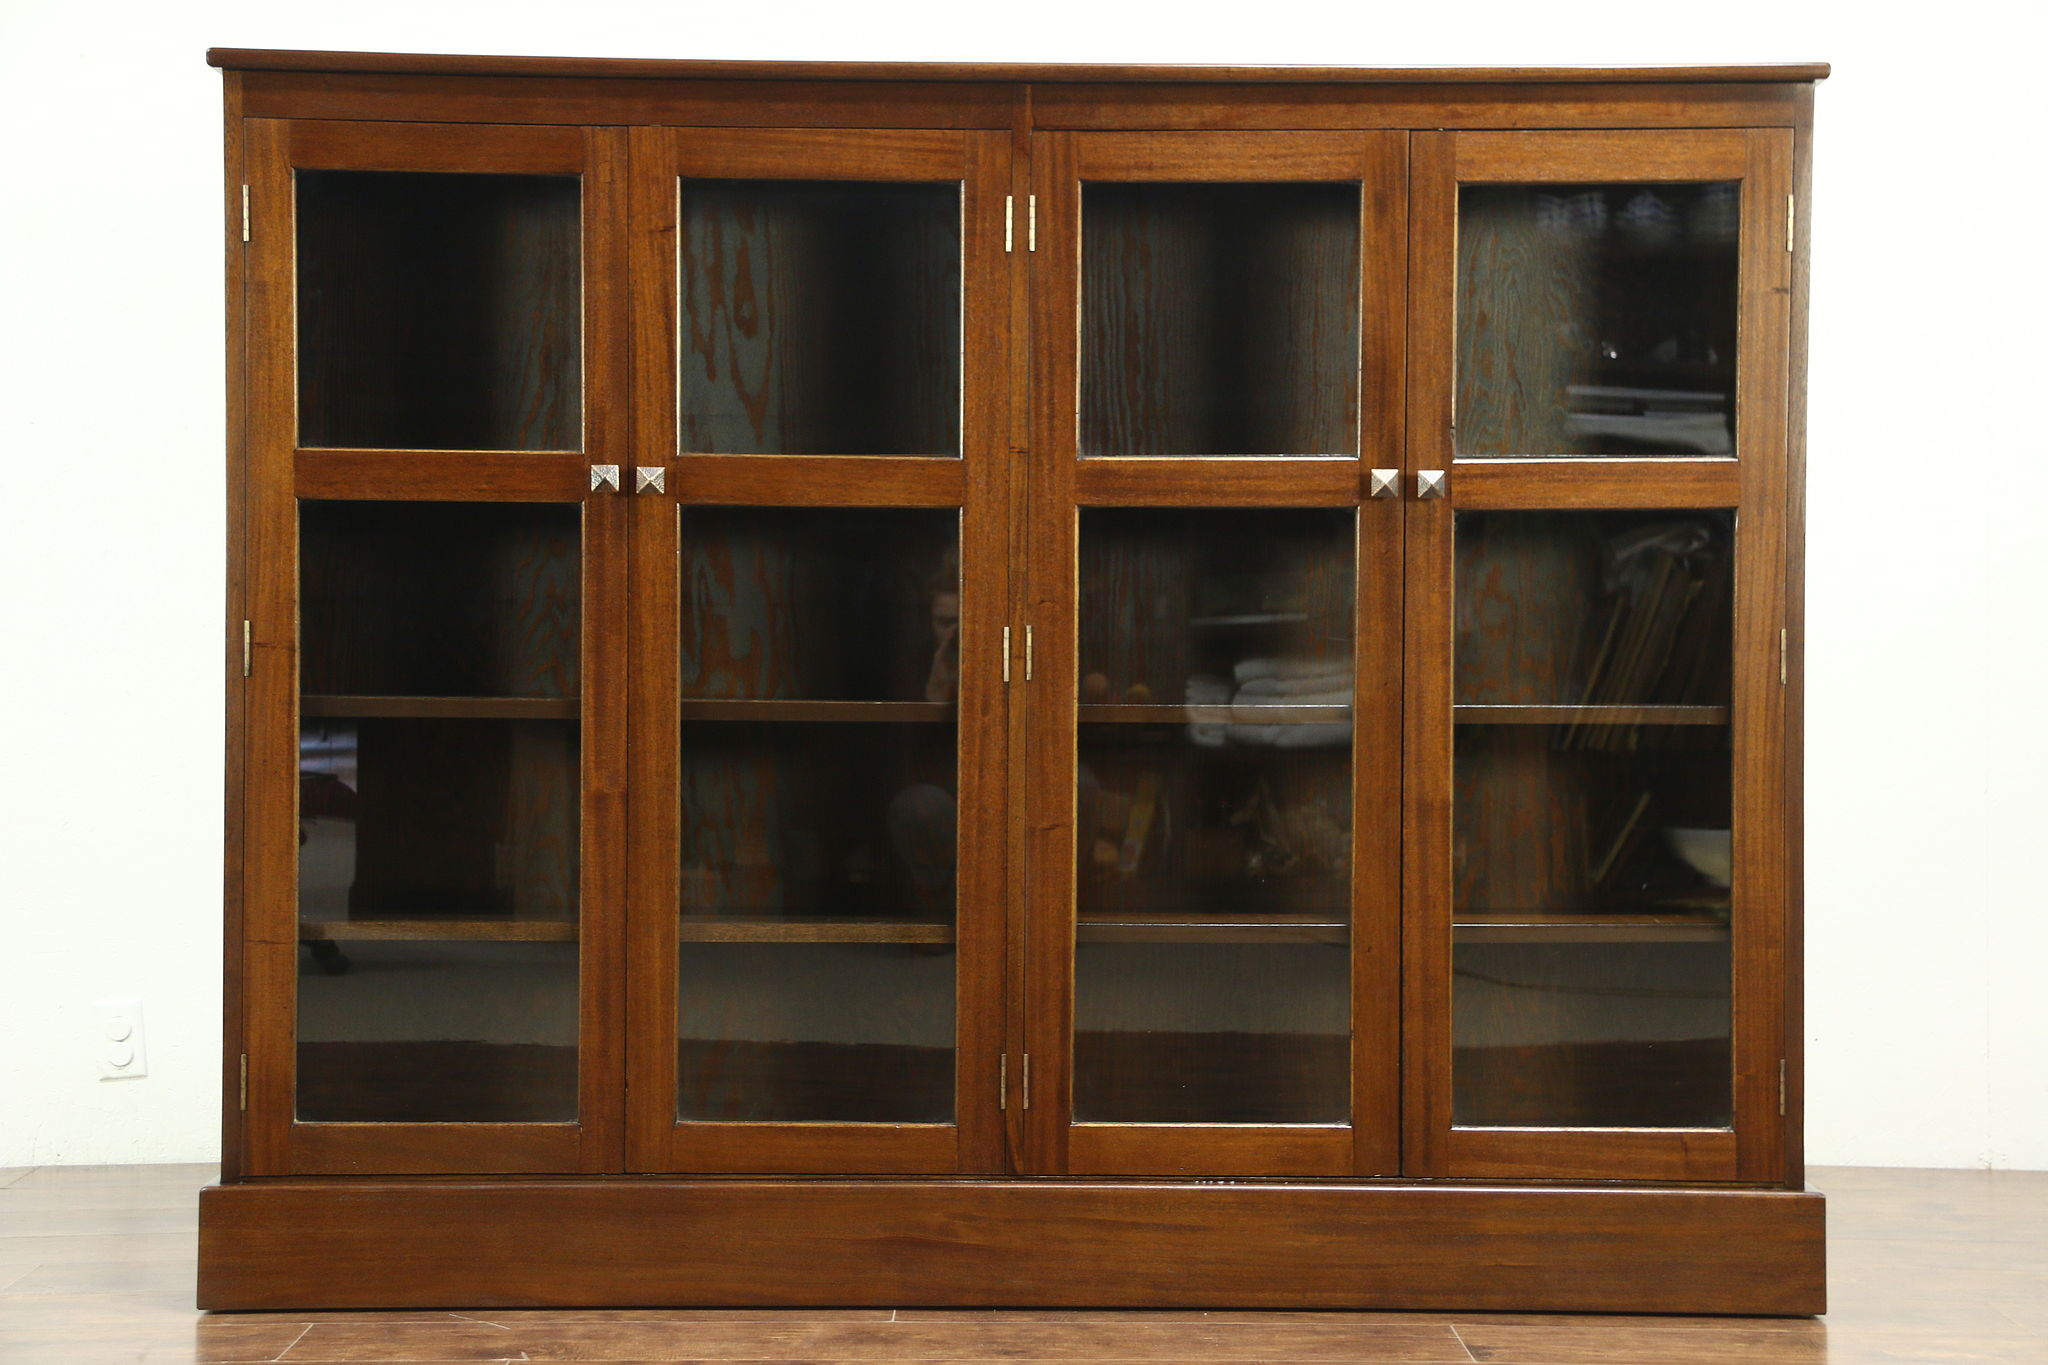 wooden room book interesting small bookcases living spaces creative for ideas bookshelf looking rolling vintage bookshelves a bookcase shelving wall